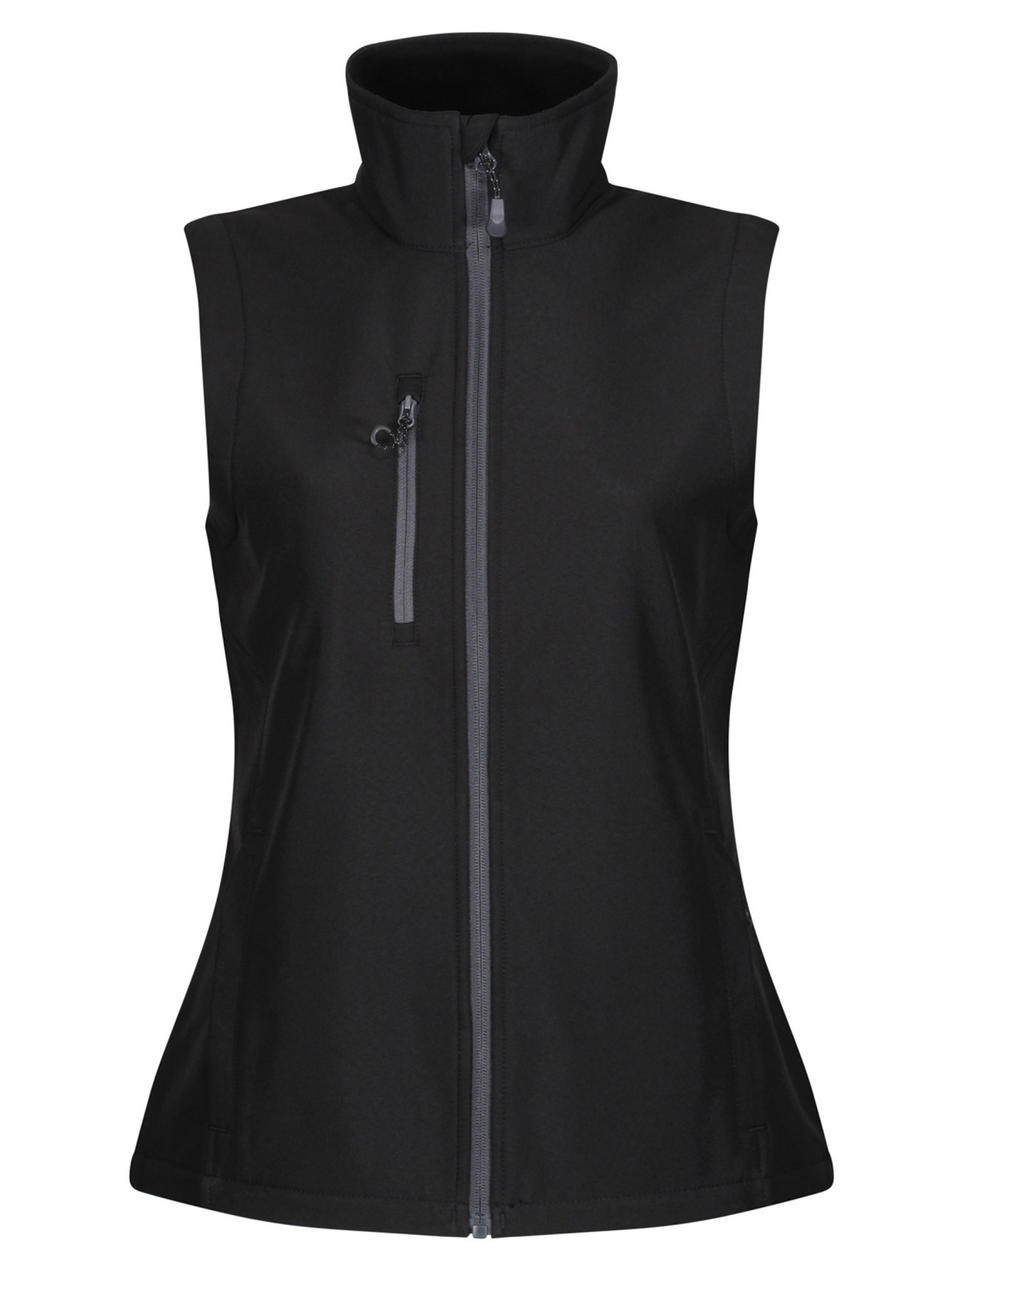 Women's Honestly Made Recycled Softshell B/warmer